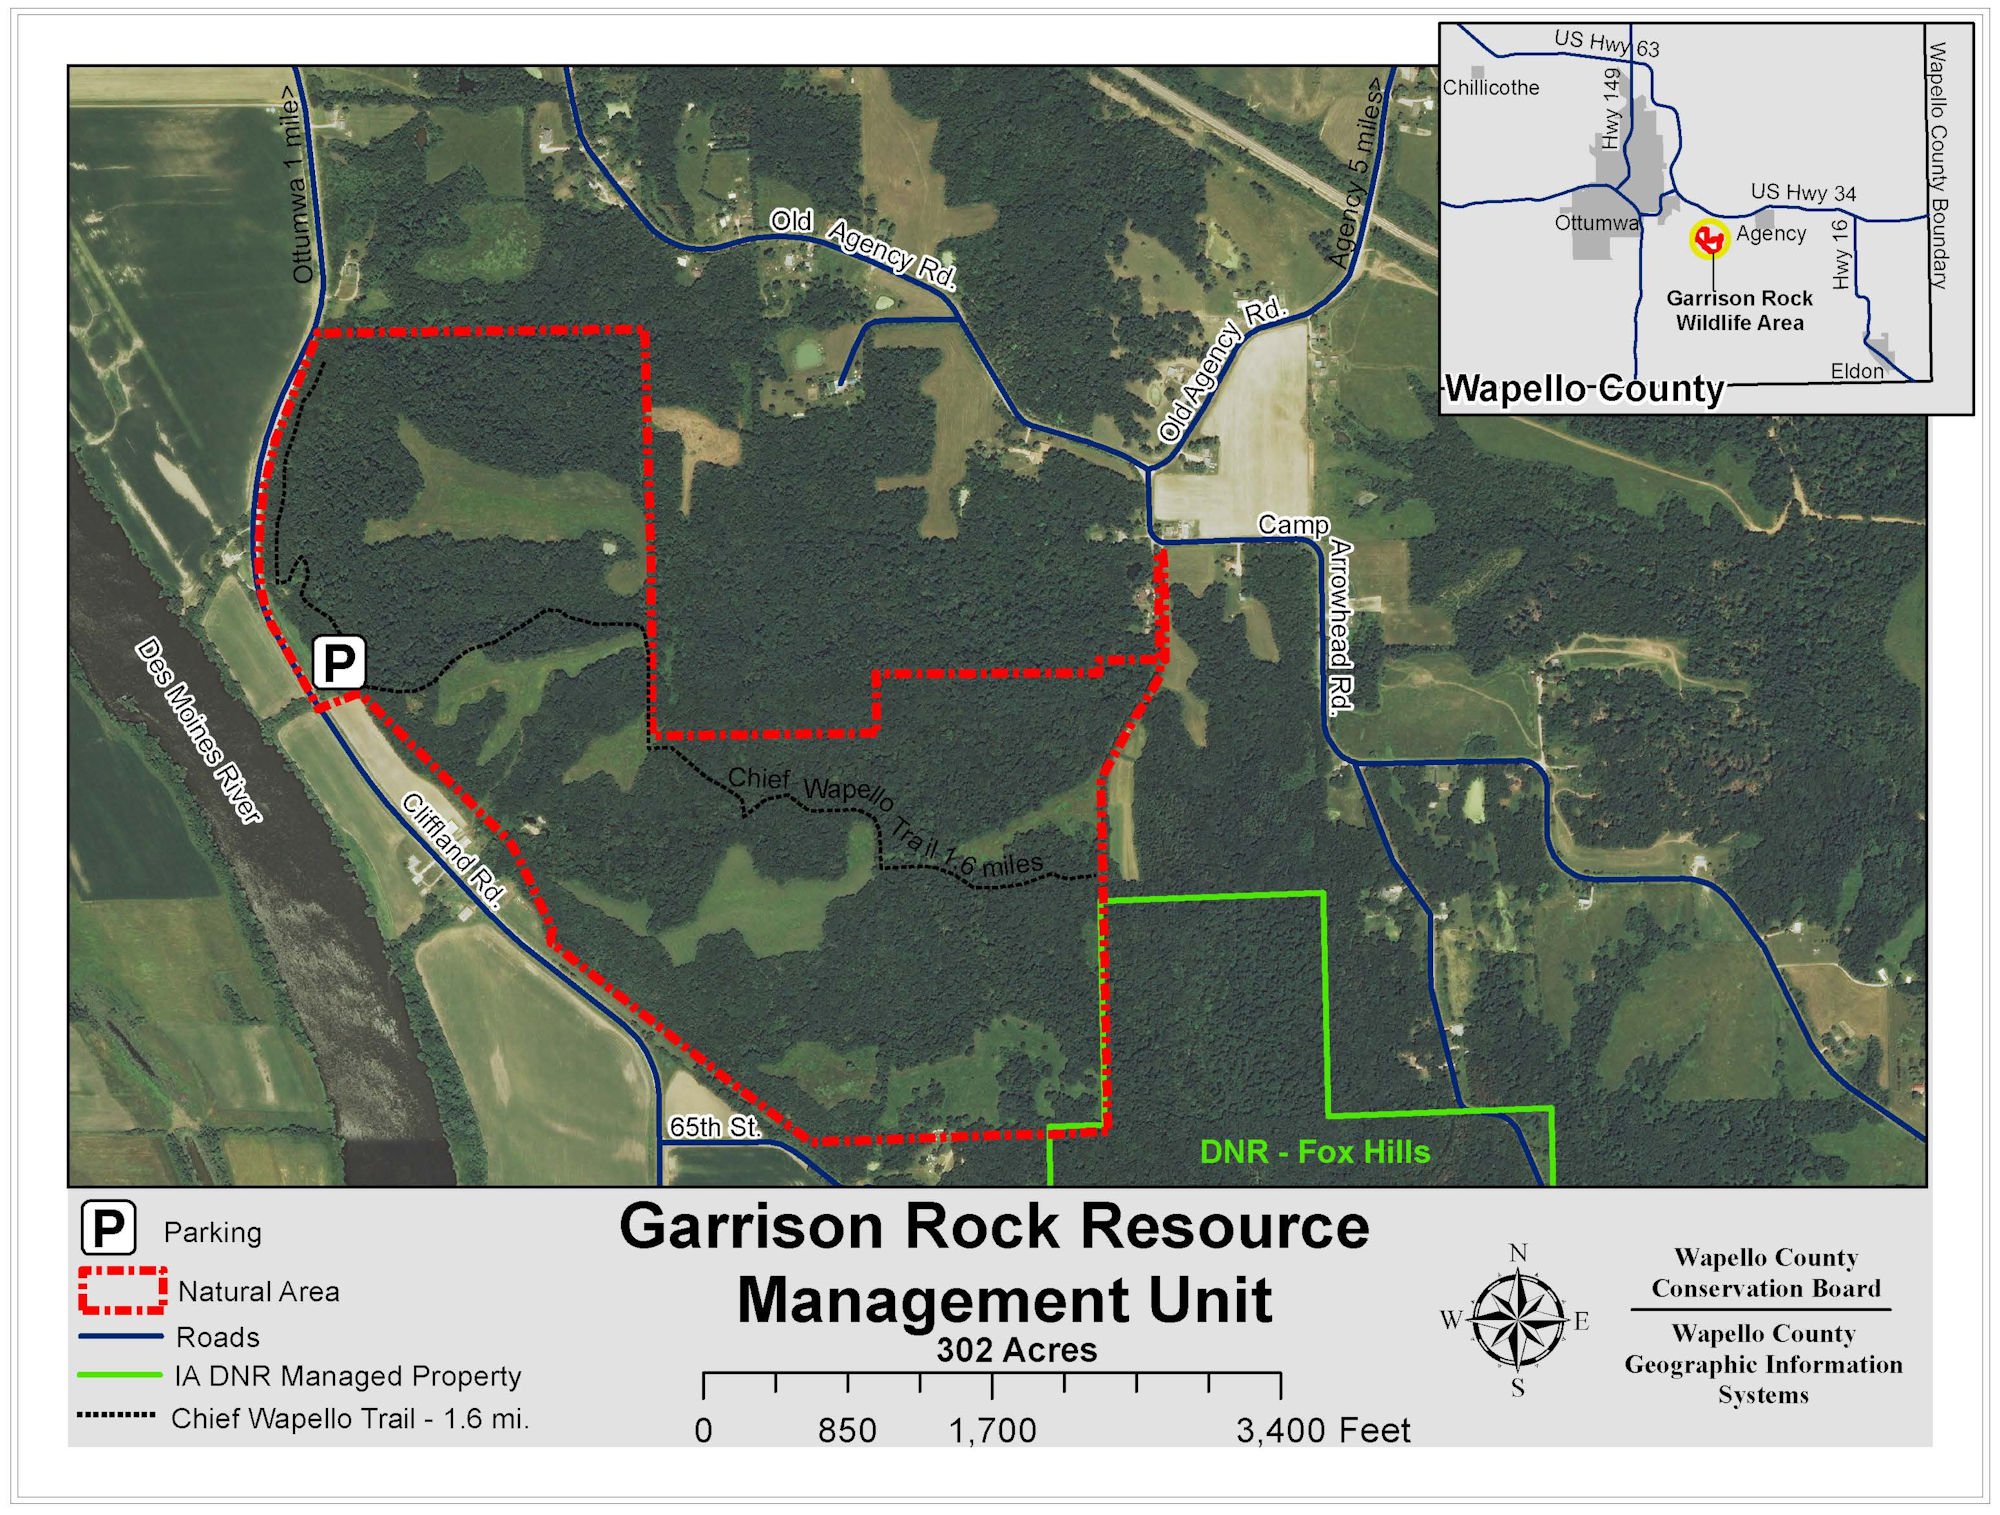 Garrison Rock Resource Management Map